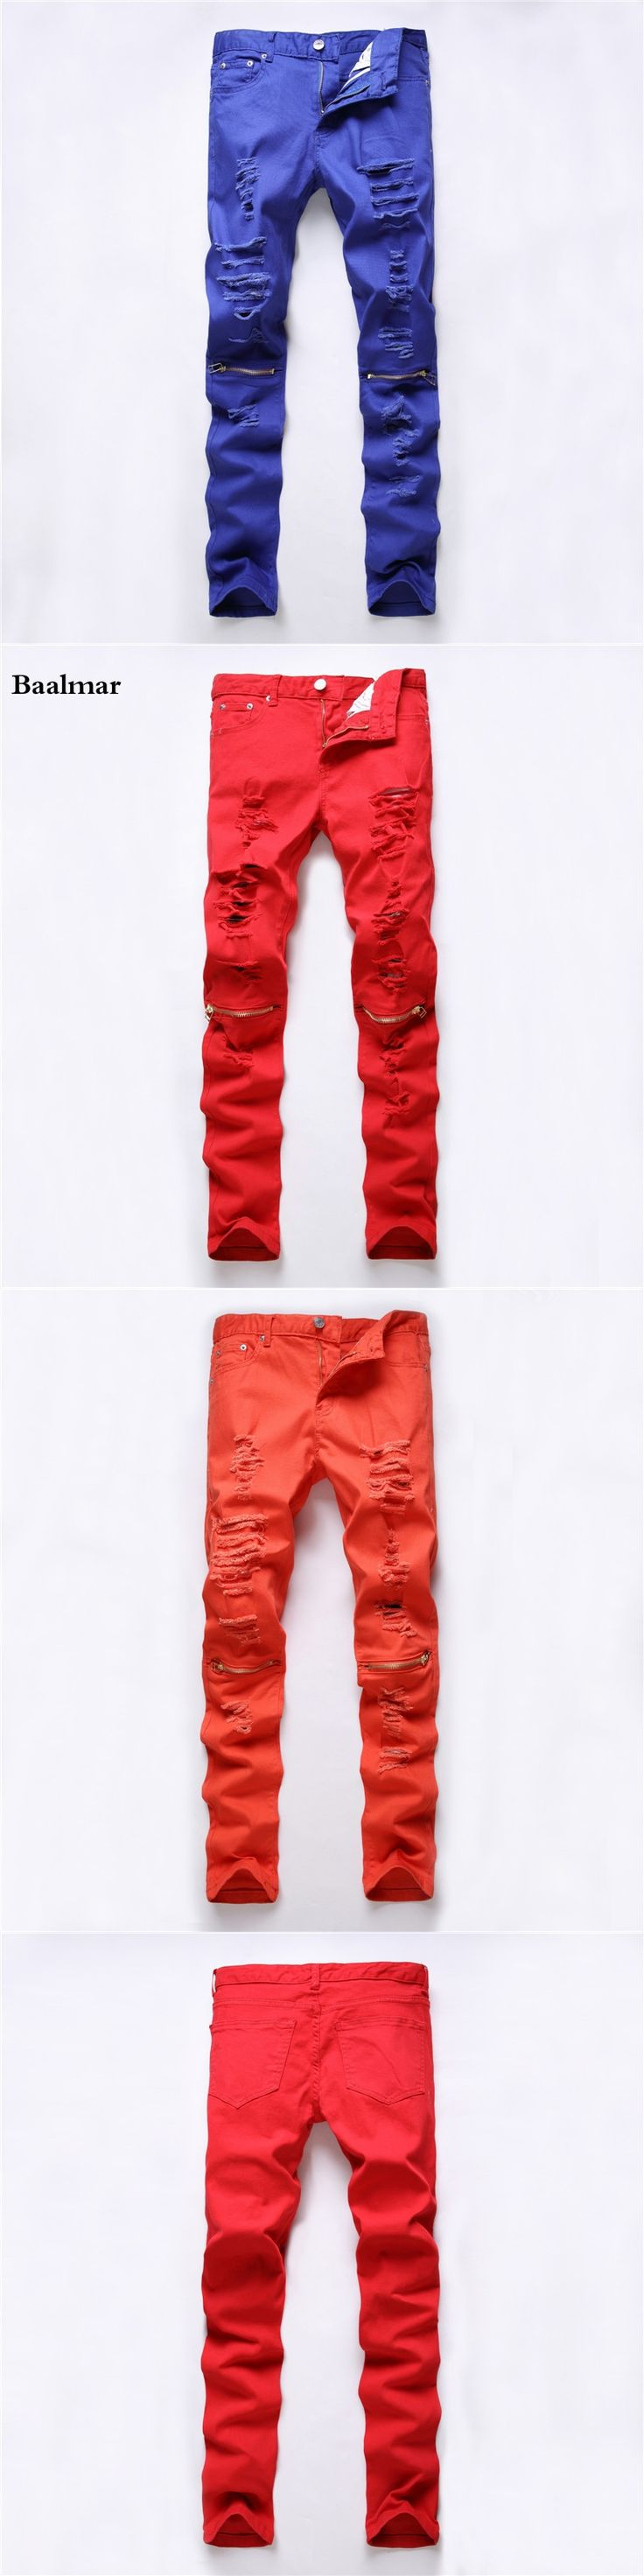 2017 New Red Ripped Jeans Men With Holes Super Skinny Famous Designer Brand Slim Fit Destroyed Torn Jean Pants For Male Homme